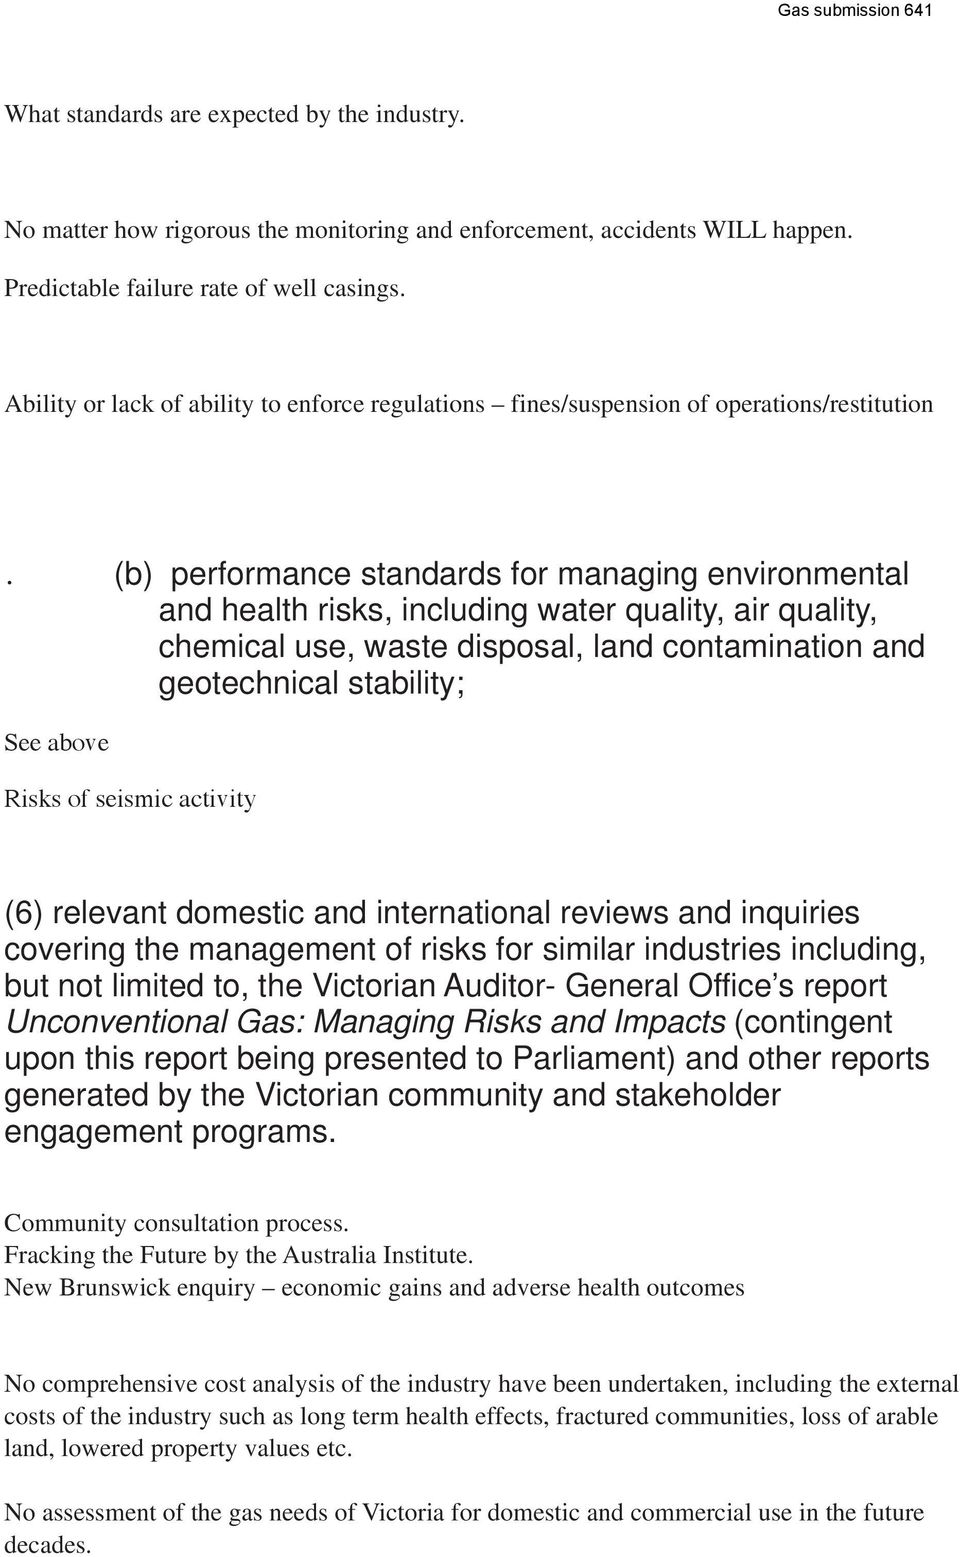 (b) performance standards for managing environmental and health risks, including water quality, air quality, chemical use, waste disposal, land contamination and geotechnical stability; See above